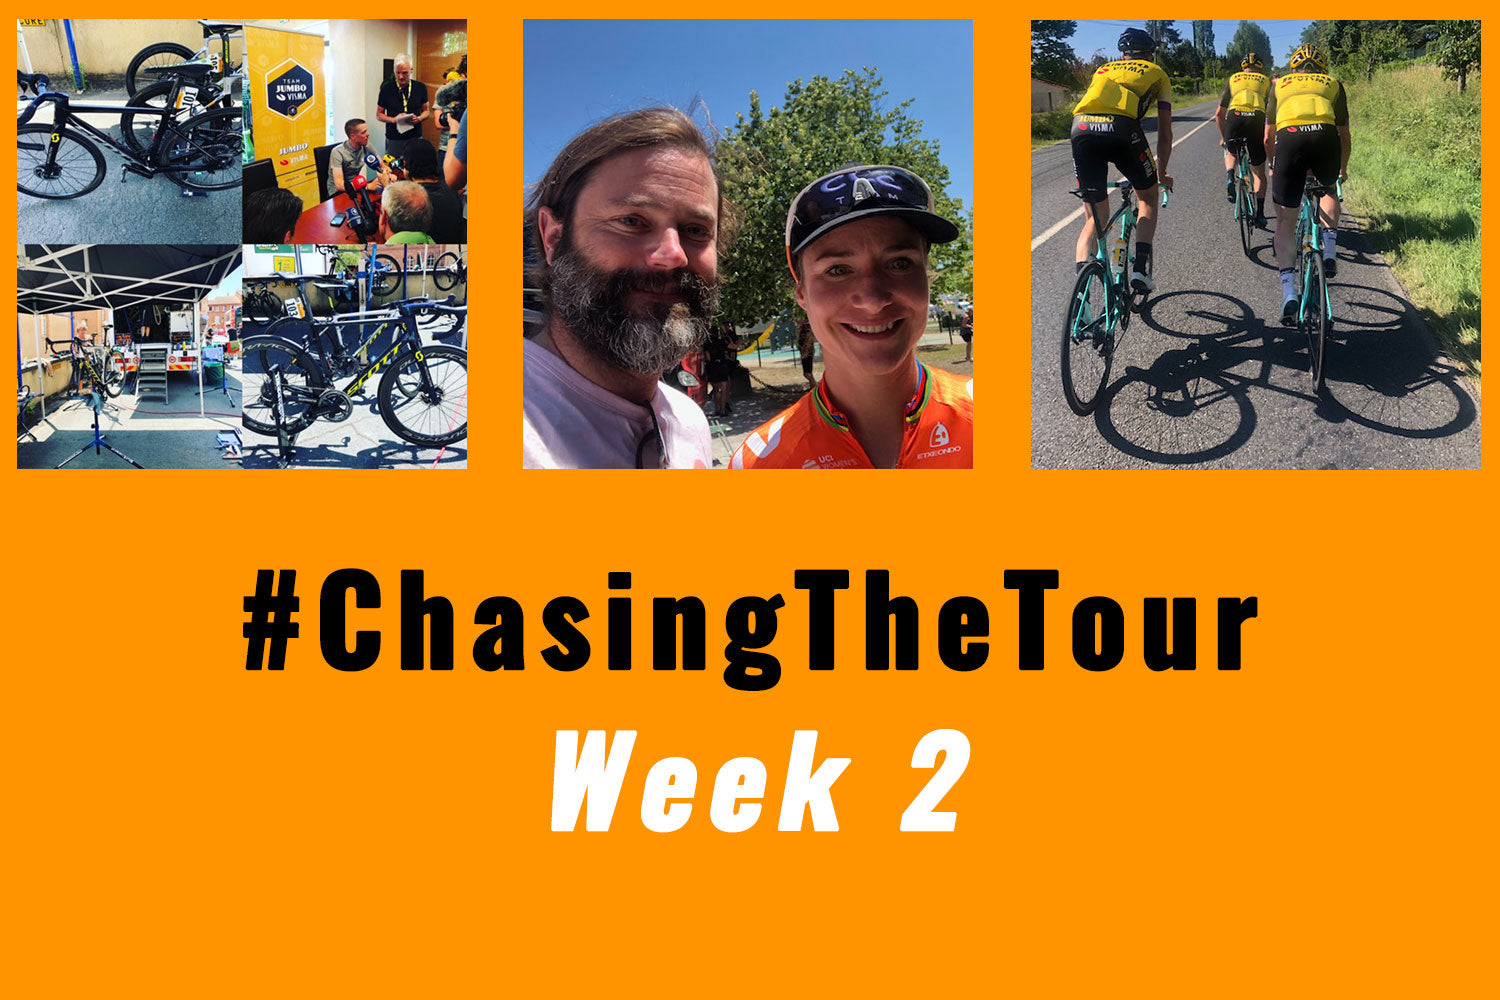 Chasing the Tour - Week 2